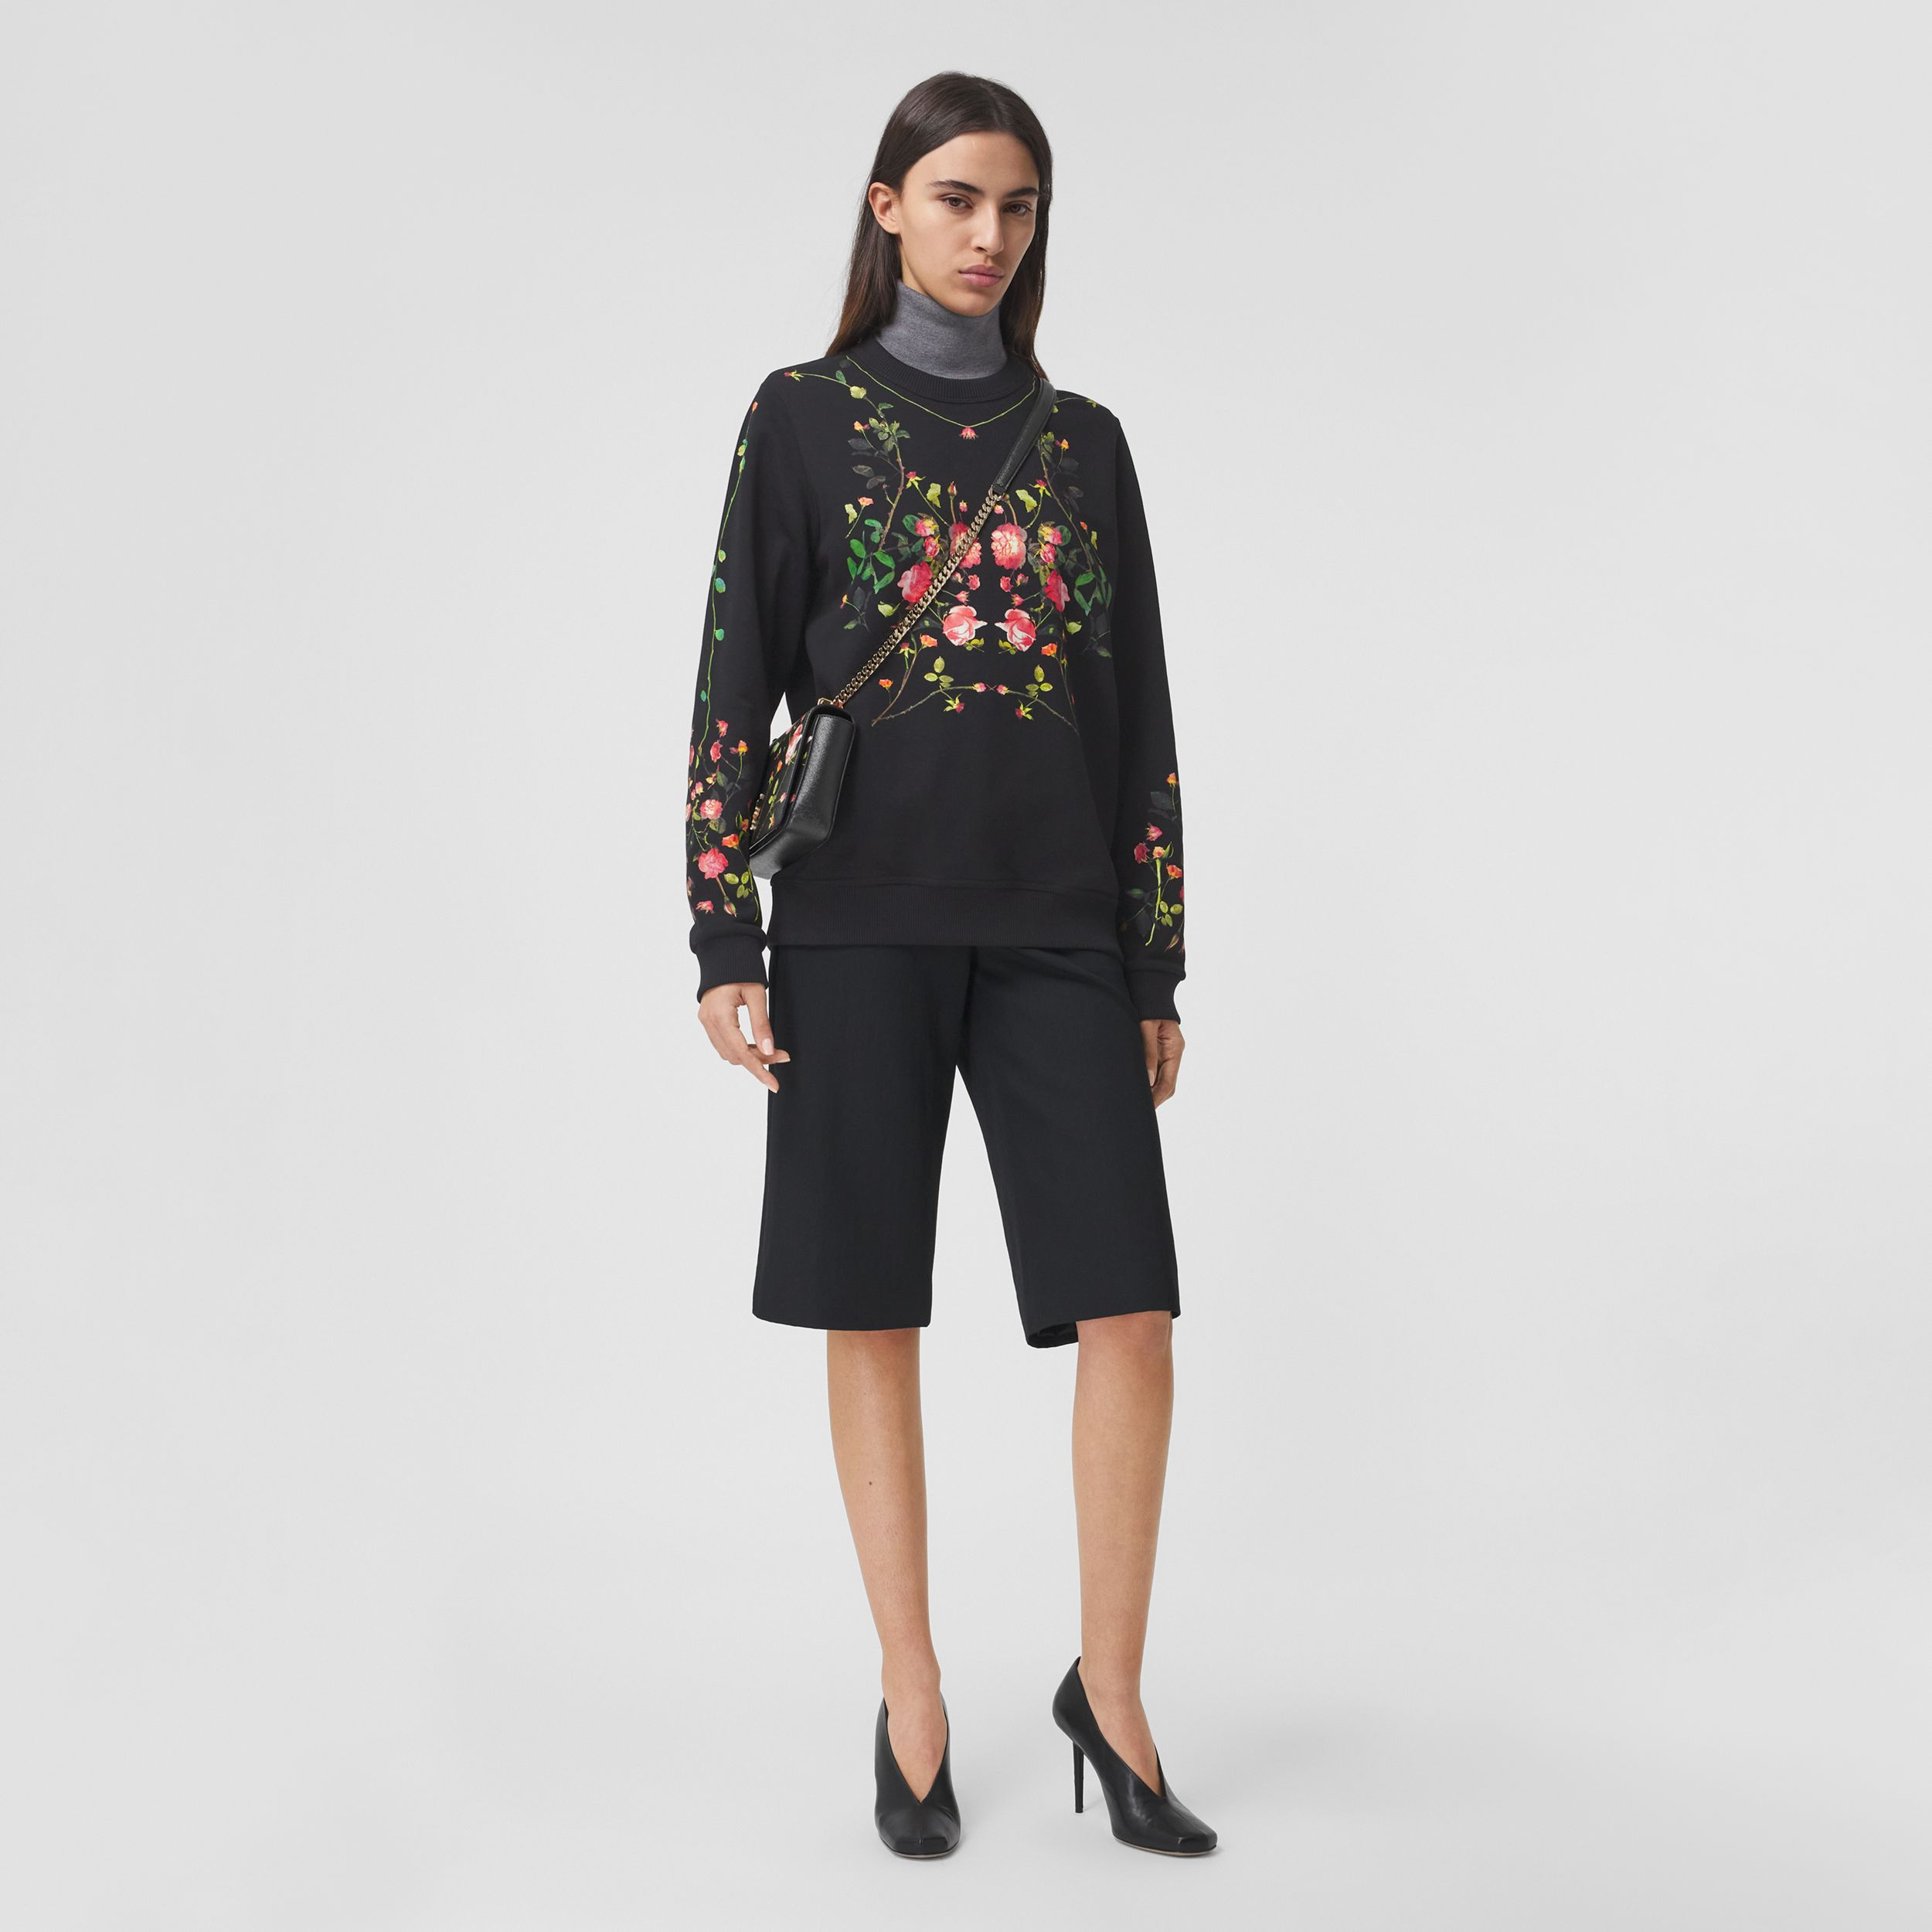 Rose Print Cotton Oversized Sweatshirt in Black - Women | Burberry Hong Kong S.A.R. - 1